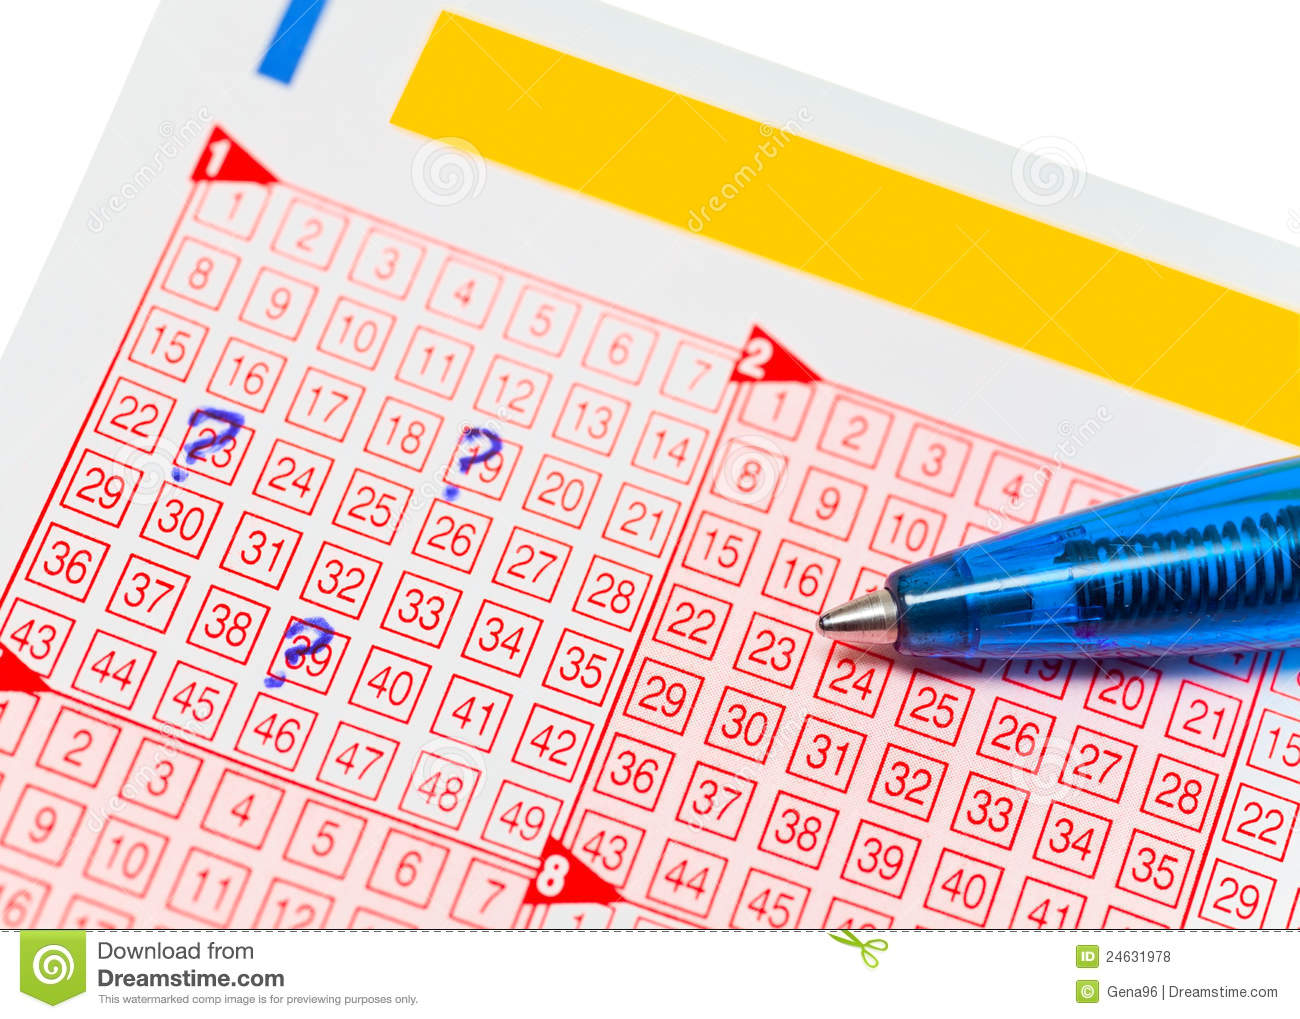 lotto karte Lotto ticket stock photo. Image of lottery, gamble, concept   24631978